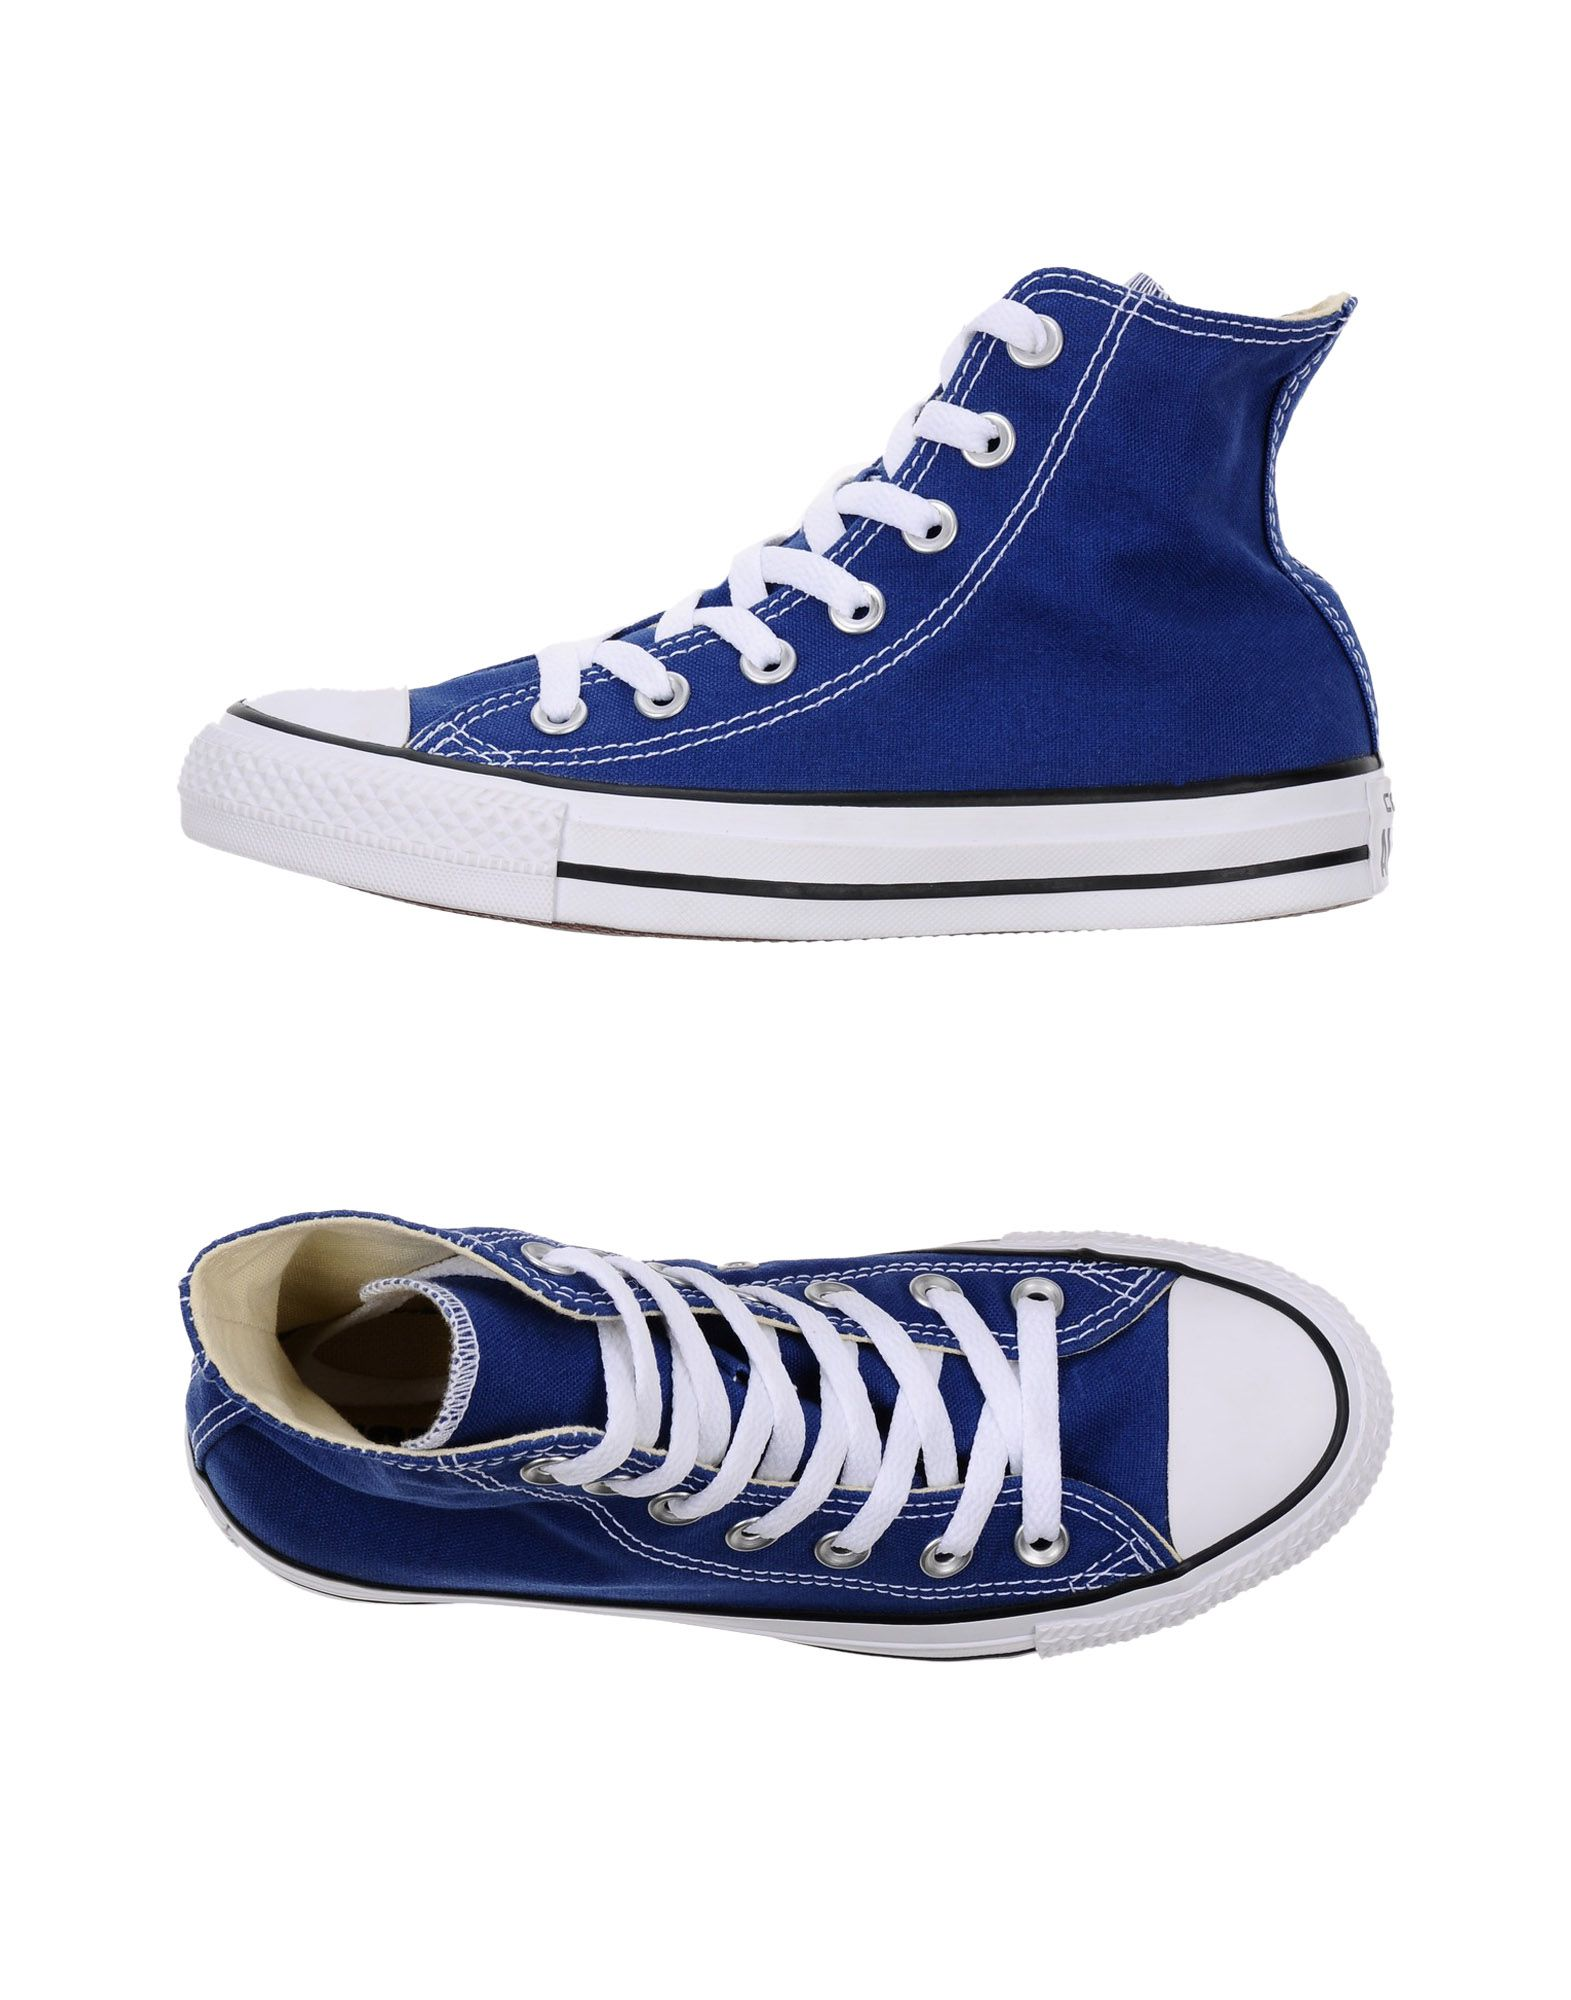 des converse all star de baskets converse all star star star - royaume - uni - 11124278mn baskets en ligne f3f8c1